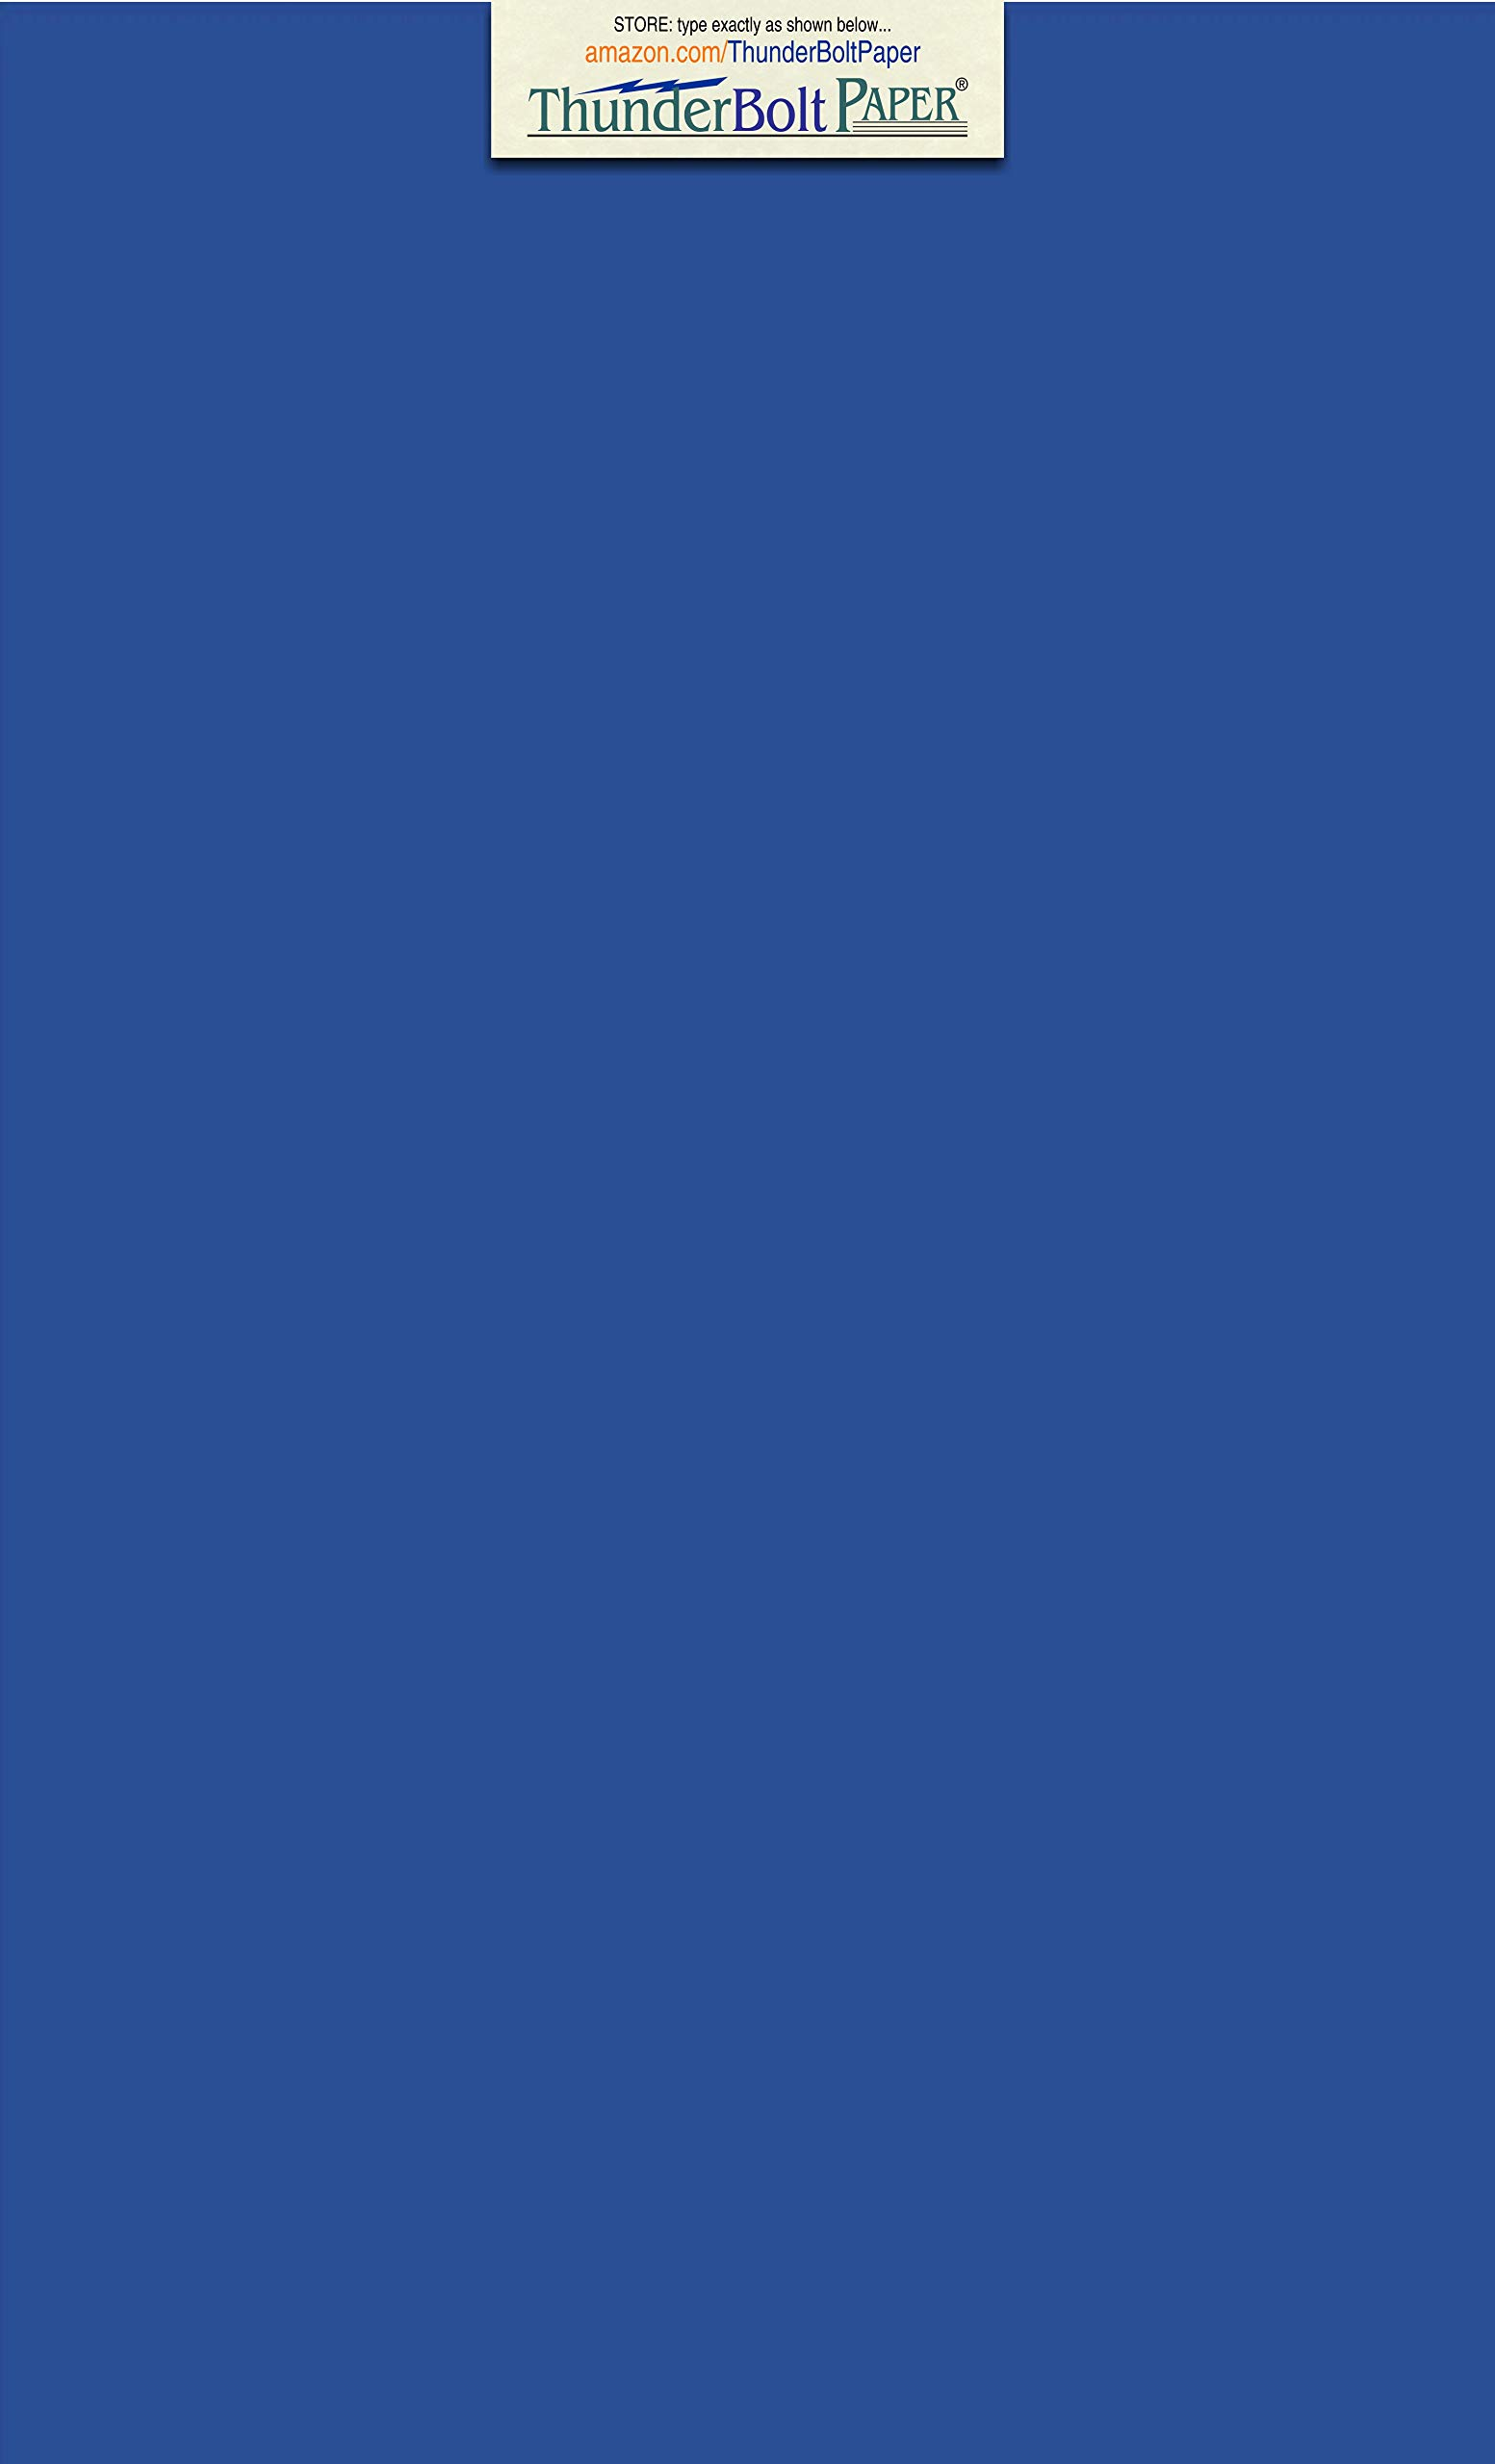 150 Bright Royal Blue 65# Cardstock Paper 8.5'' X 14'' (8.5X14 Inches) Legal|Menu Size - 65Cover/45Bond Light Weight Card Stock - Bright Printable Smooth Paper Surface by ThunderBolt Paper